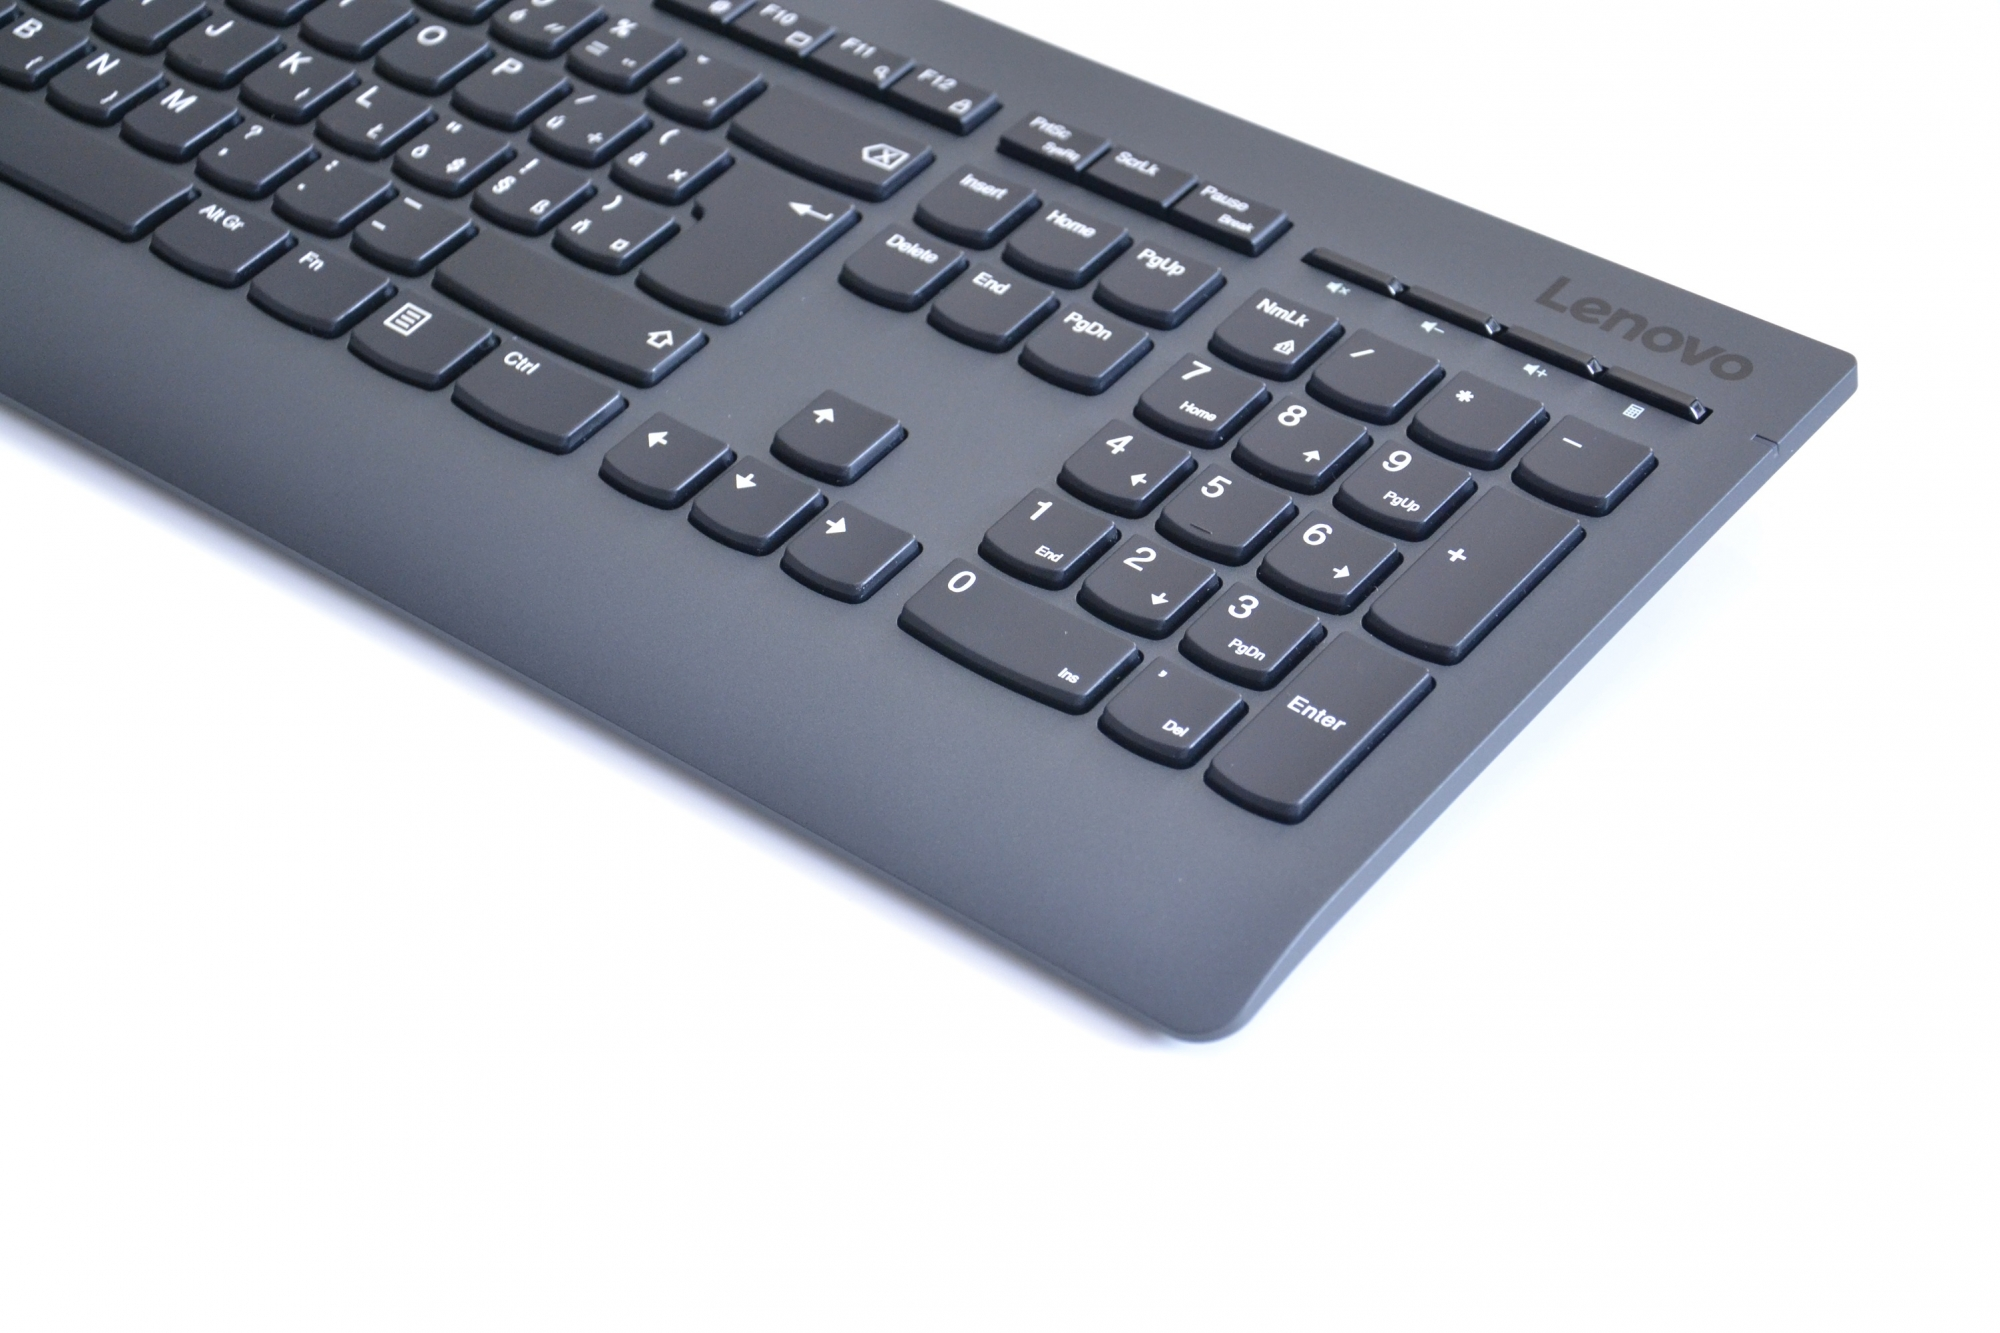 Lenovo Professional Wireless Keyboard Slovak 4X30H56867